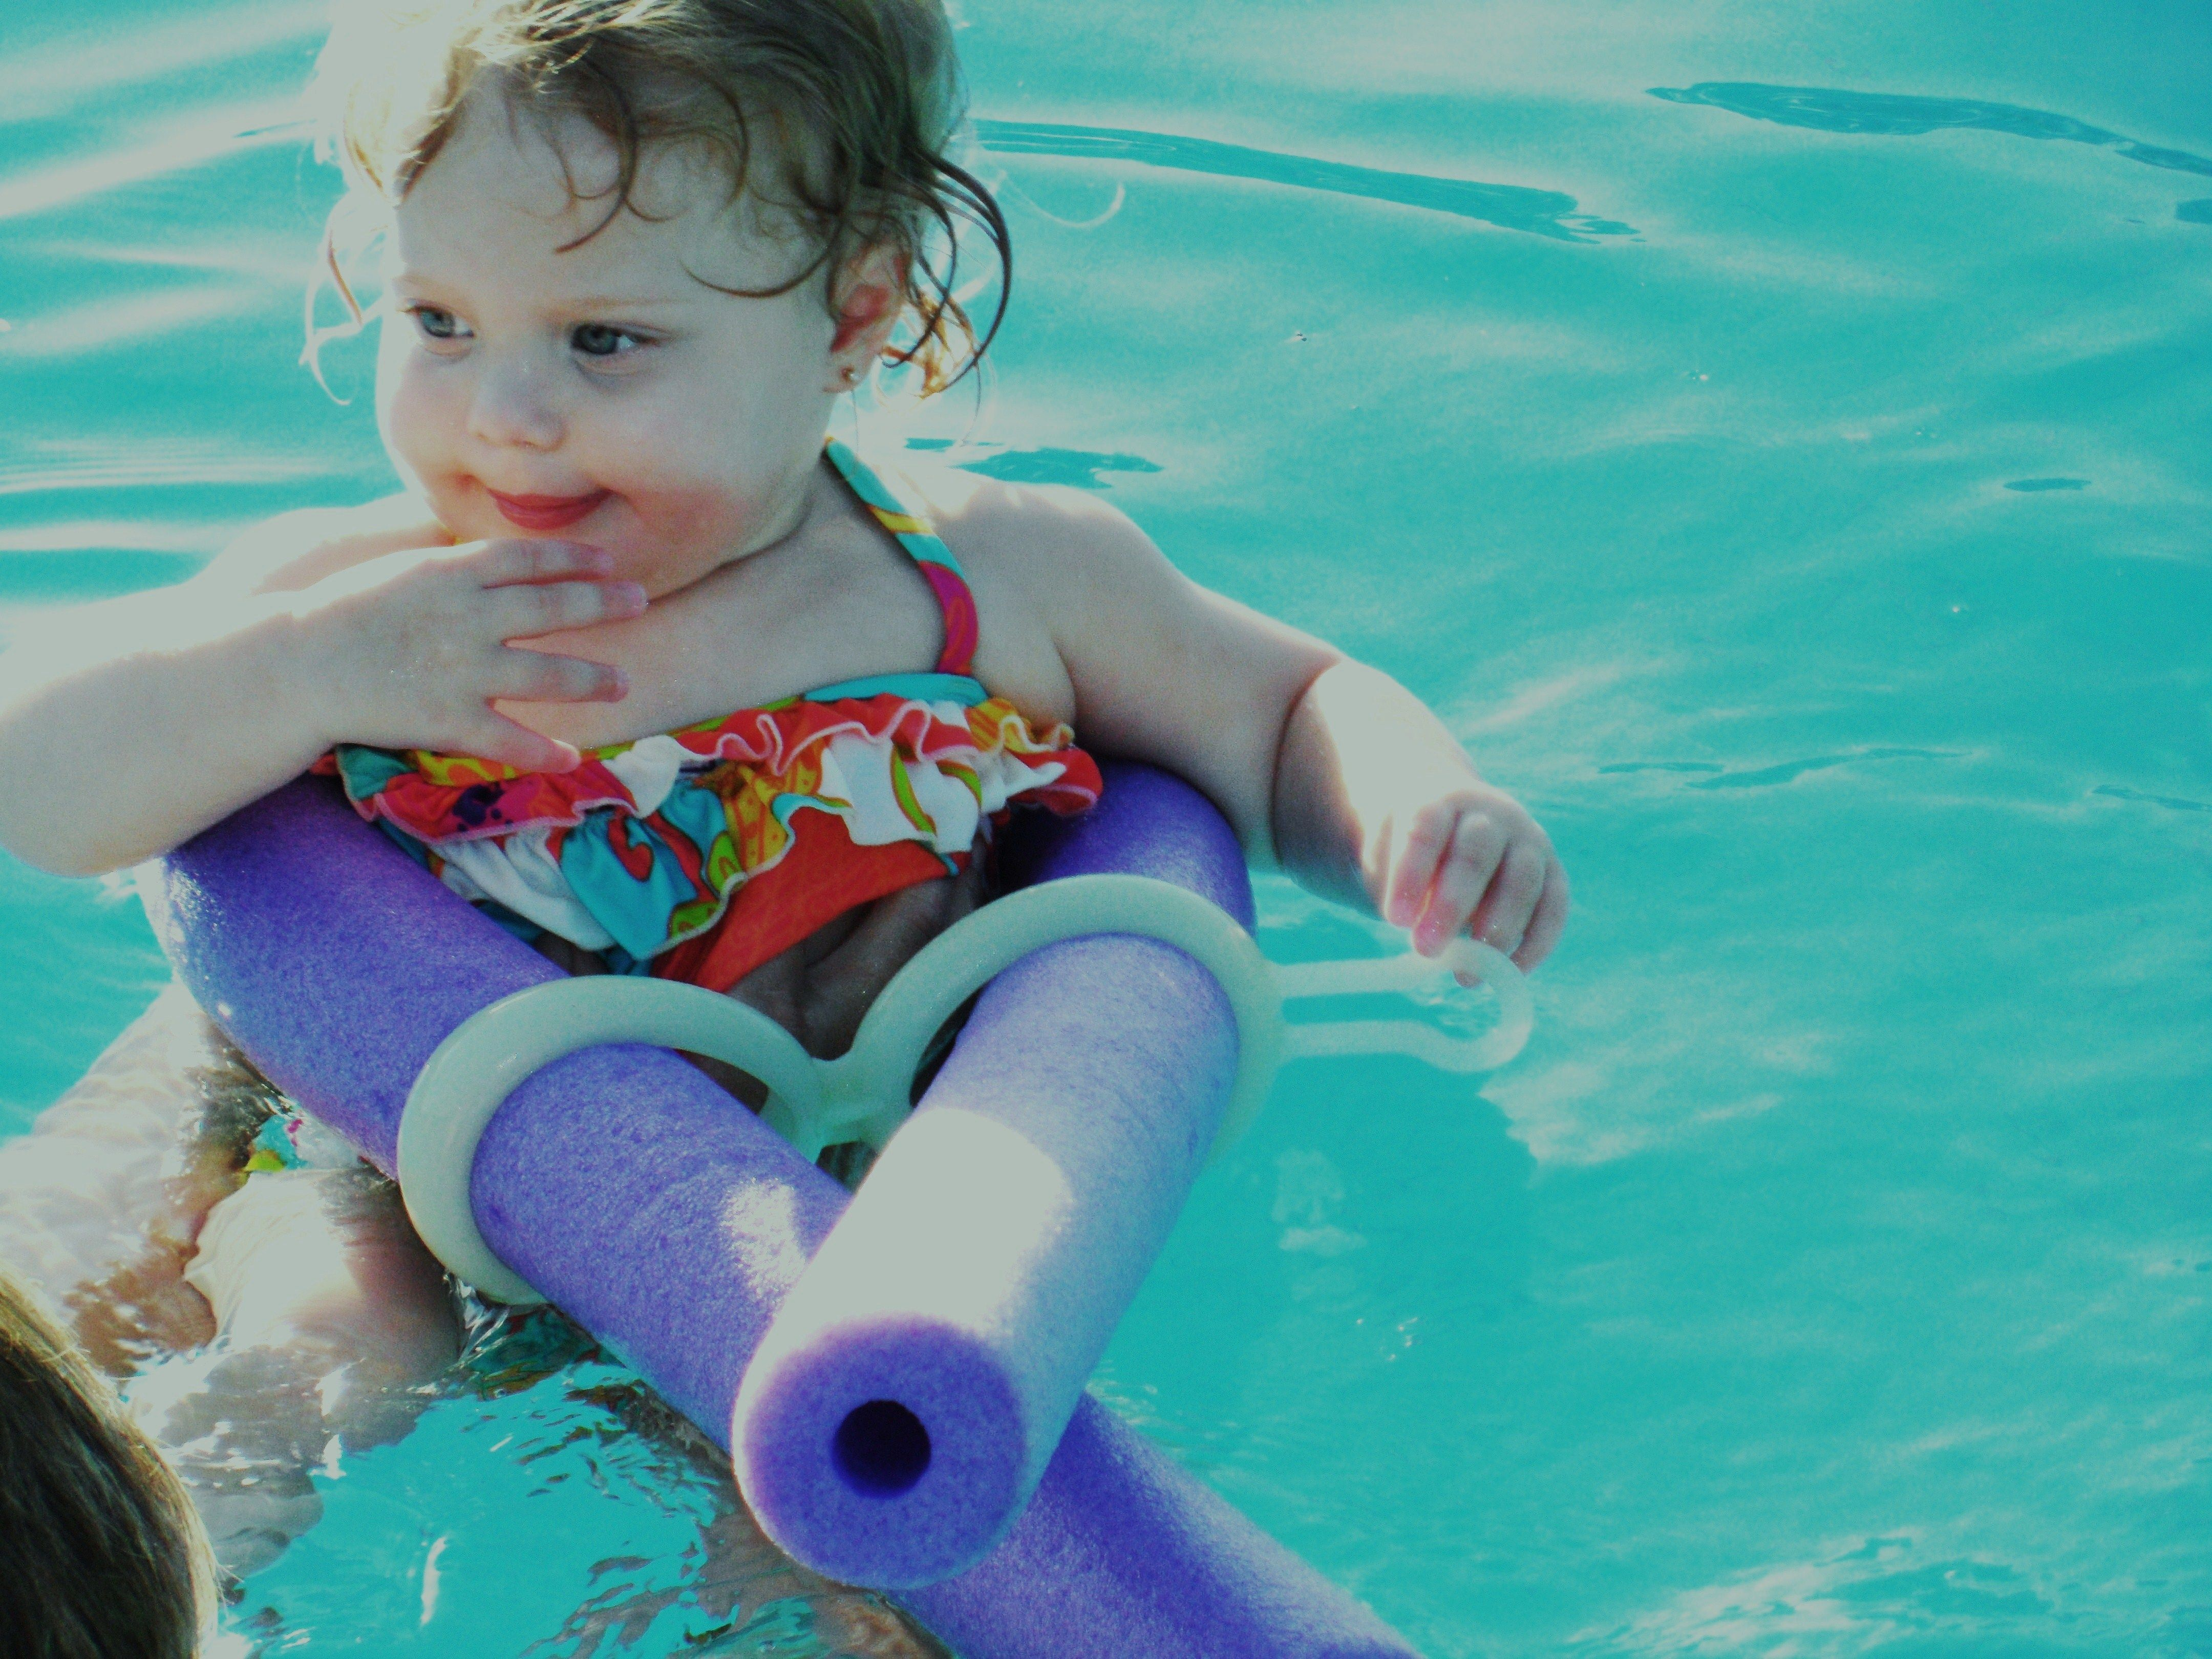 Using The Knoodleknuckles With A Foam Swim Noodle To Make A Pool Float For Gabbie Having Pool